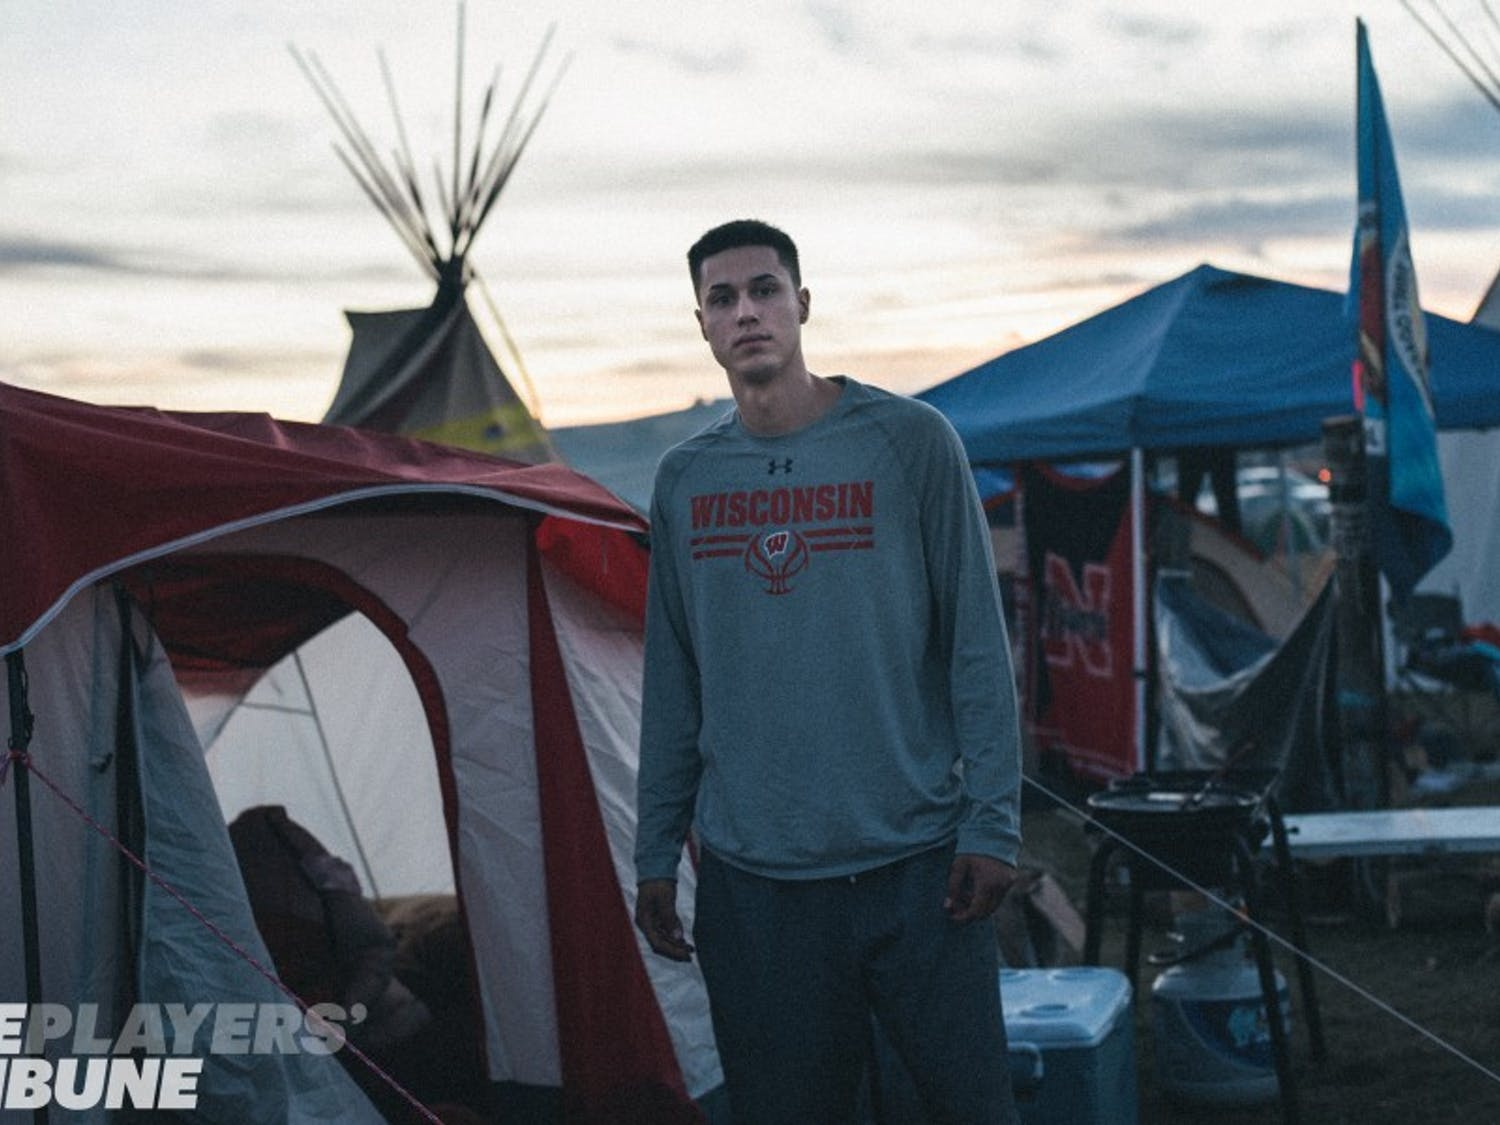 Bronson Koenig joins members of the Dakota Access Pipeline protests near the Standing Rock Indian Reservation and Bismarck, N.D. on September 17, 2016. (Photo by Alexandra Hootnick/The Players' Tribune)